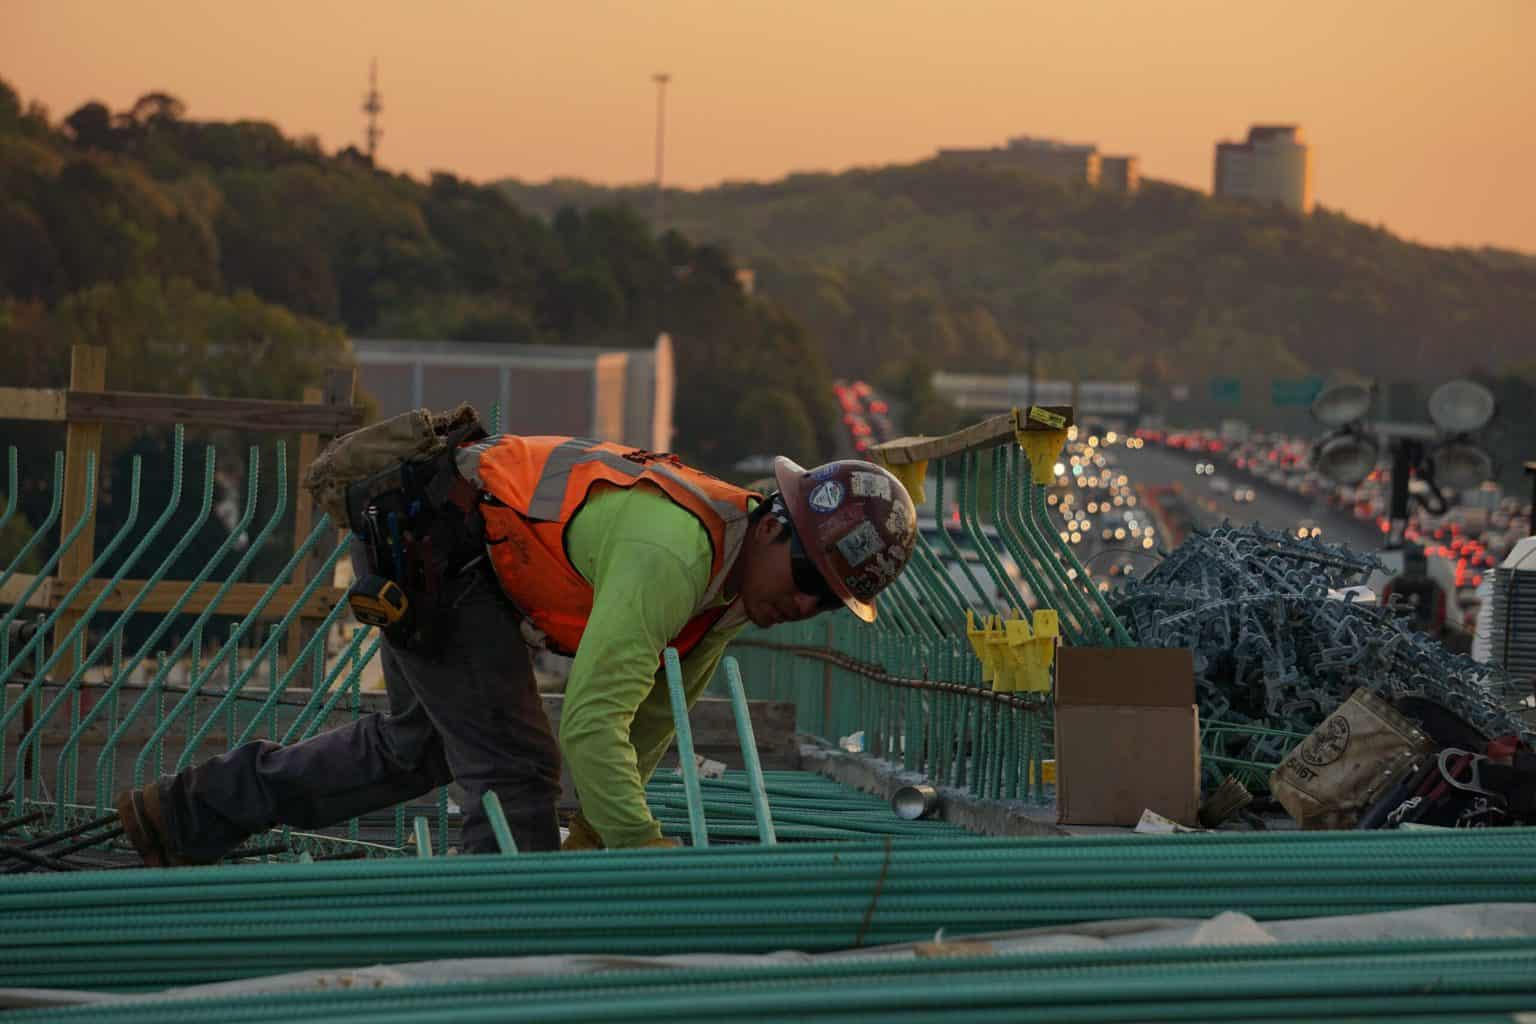 A construction worker working on the roof